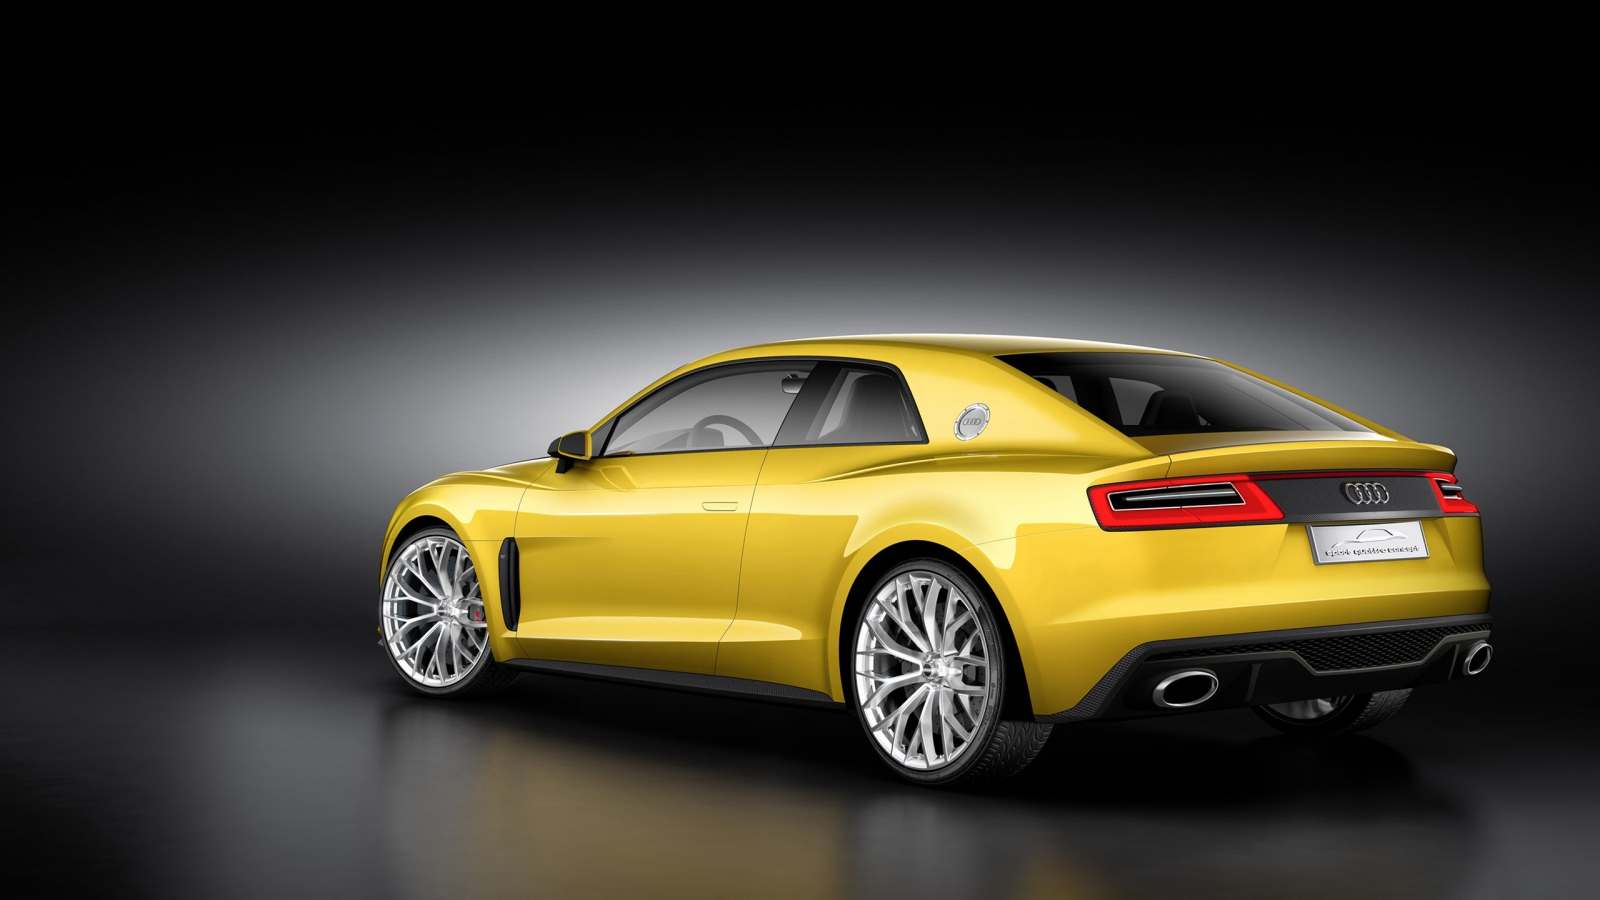 Rear of Audi Sport Quattro Concept for 1600 x 900 HDTV resolution